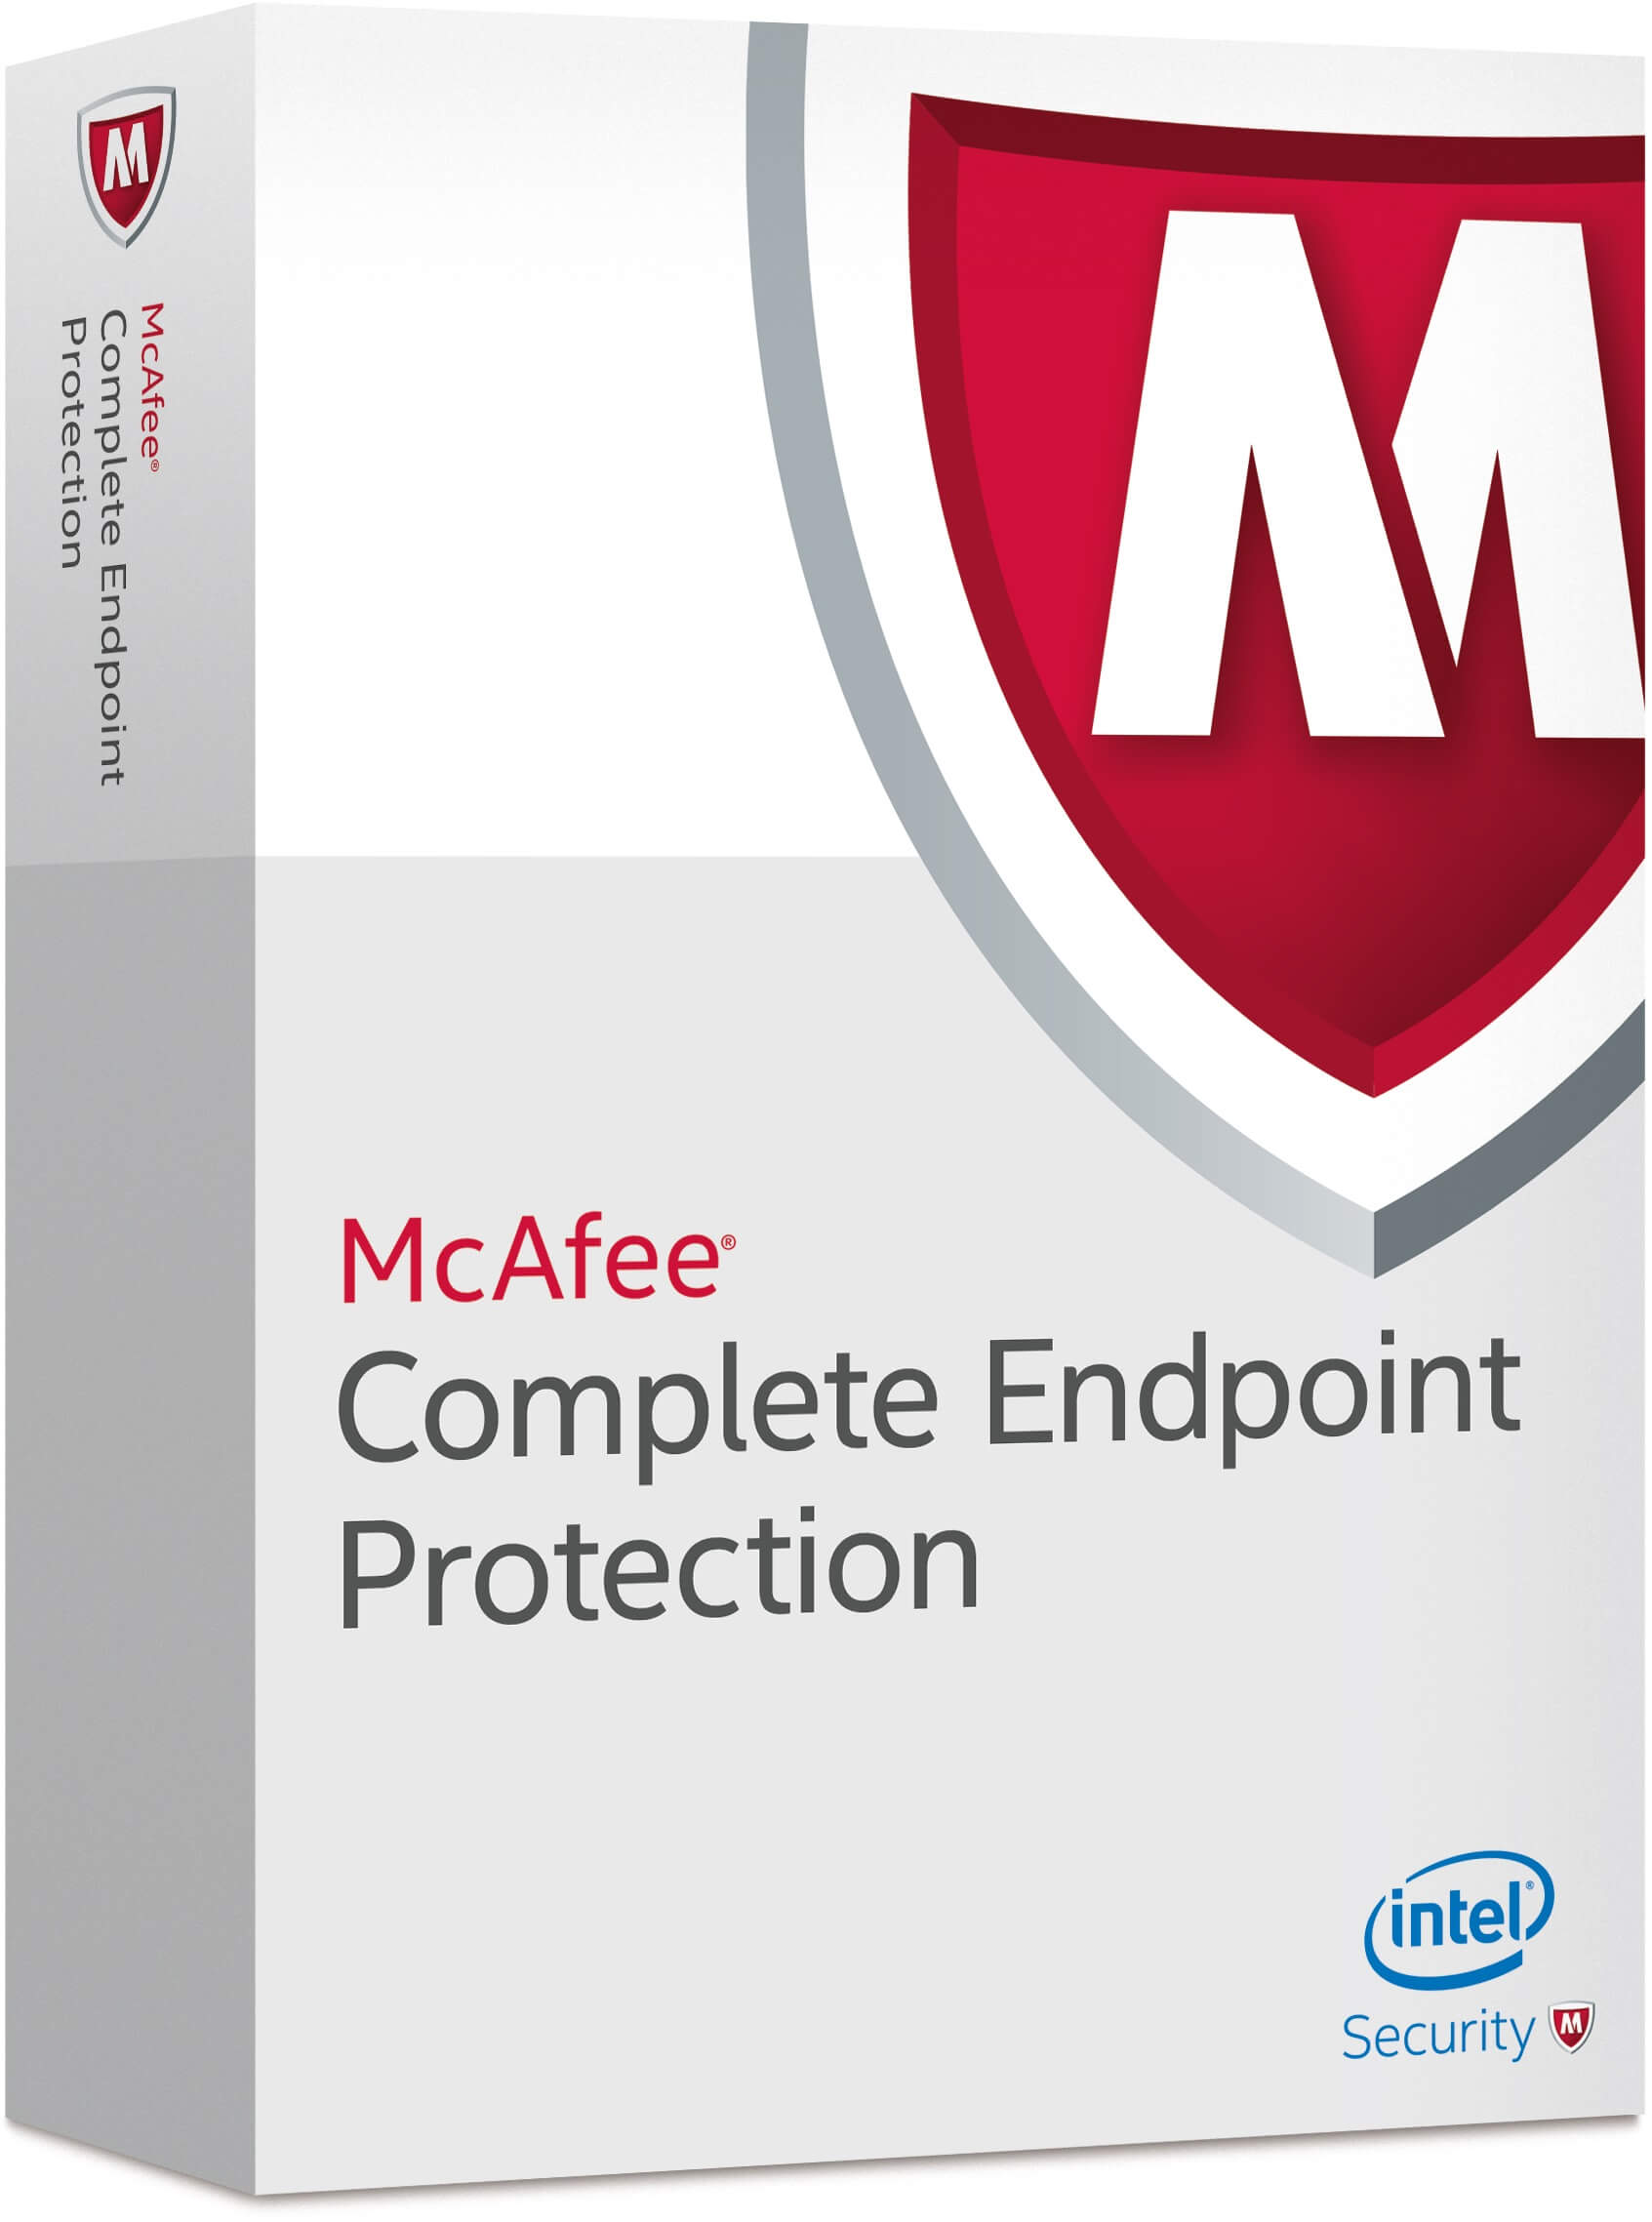 McAfee Complete EndPoint Protection - Business inkl. 1 Jahr Gold Support Win, Multilingual (Lizenzstaffel 11-25 User) (CEBCDE-AA-AA)